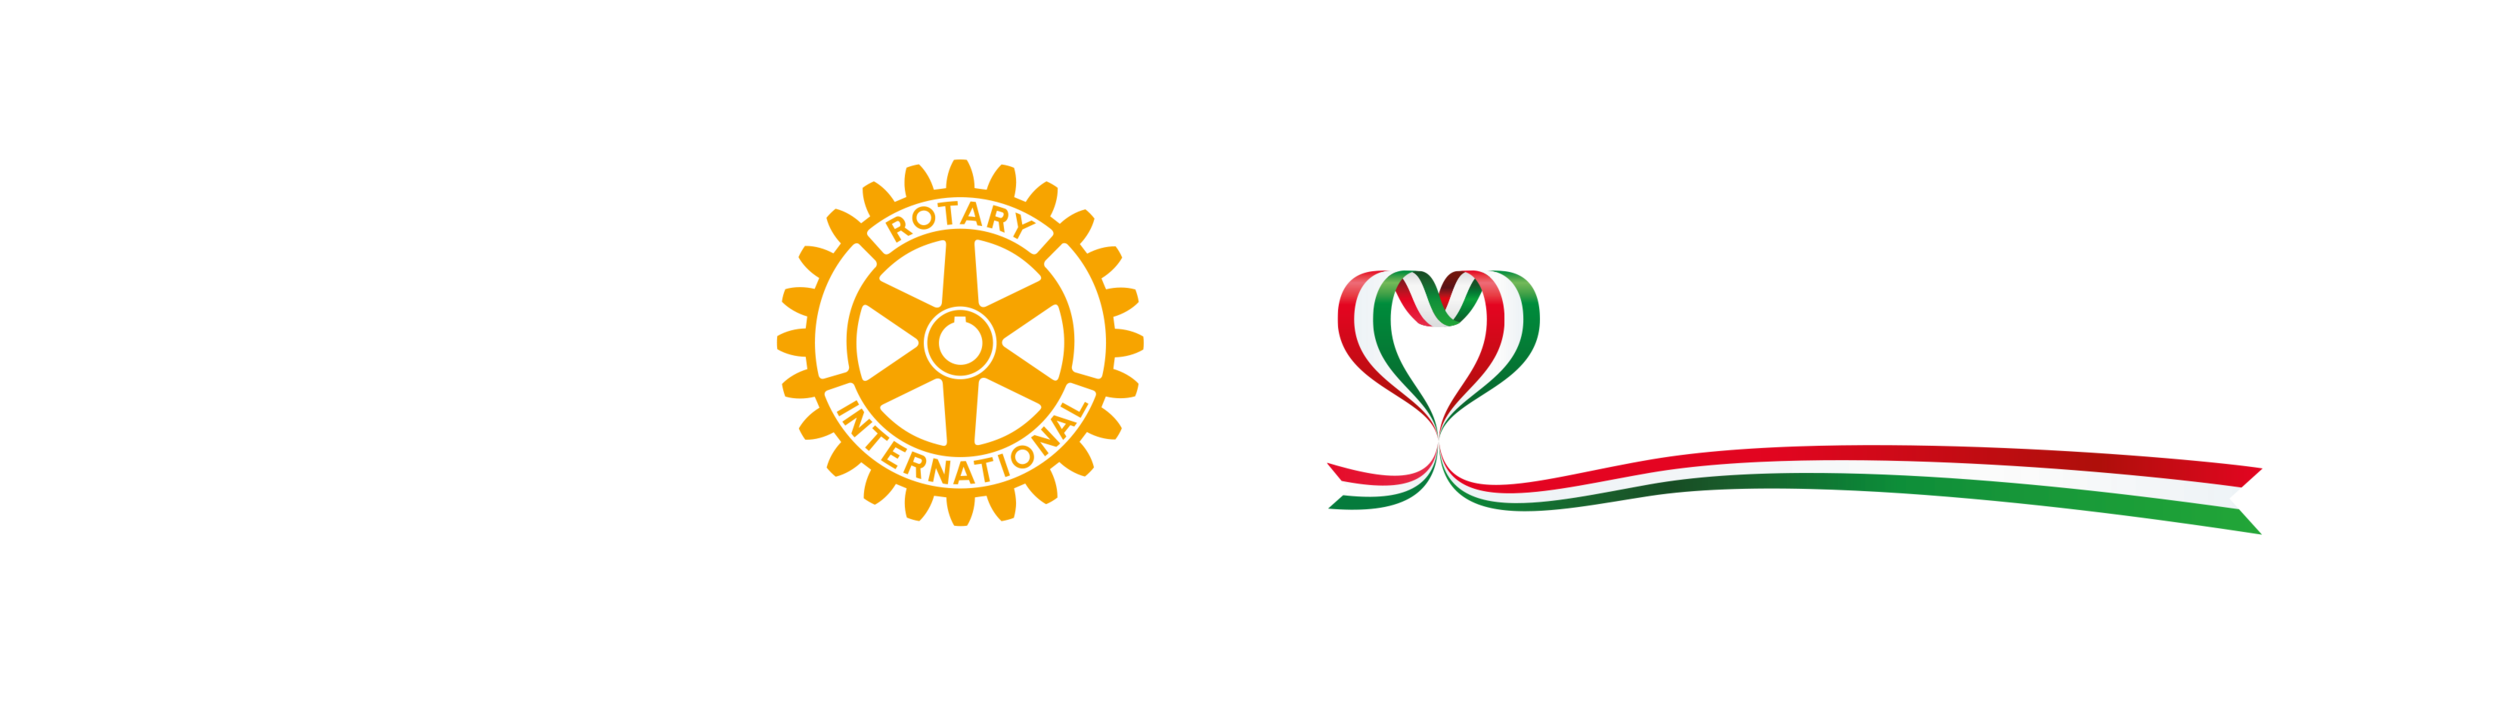 Rotary Hungary INVERZ 2019 logo PNG.png